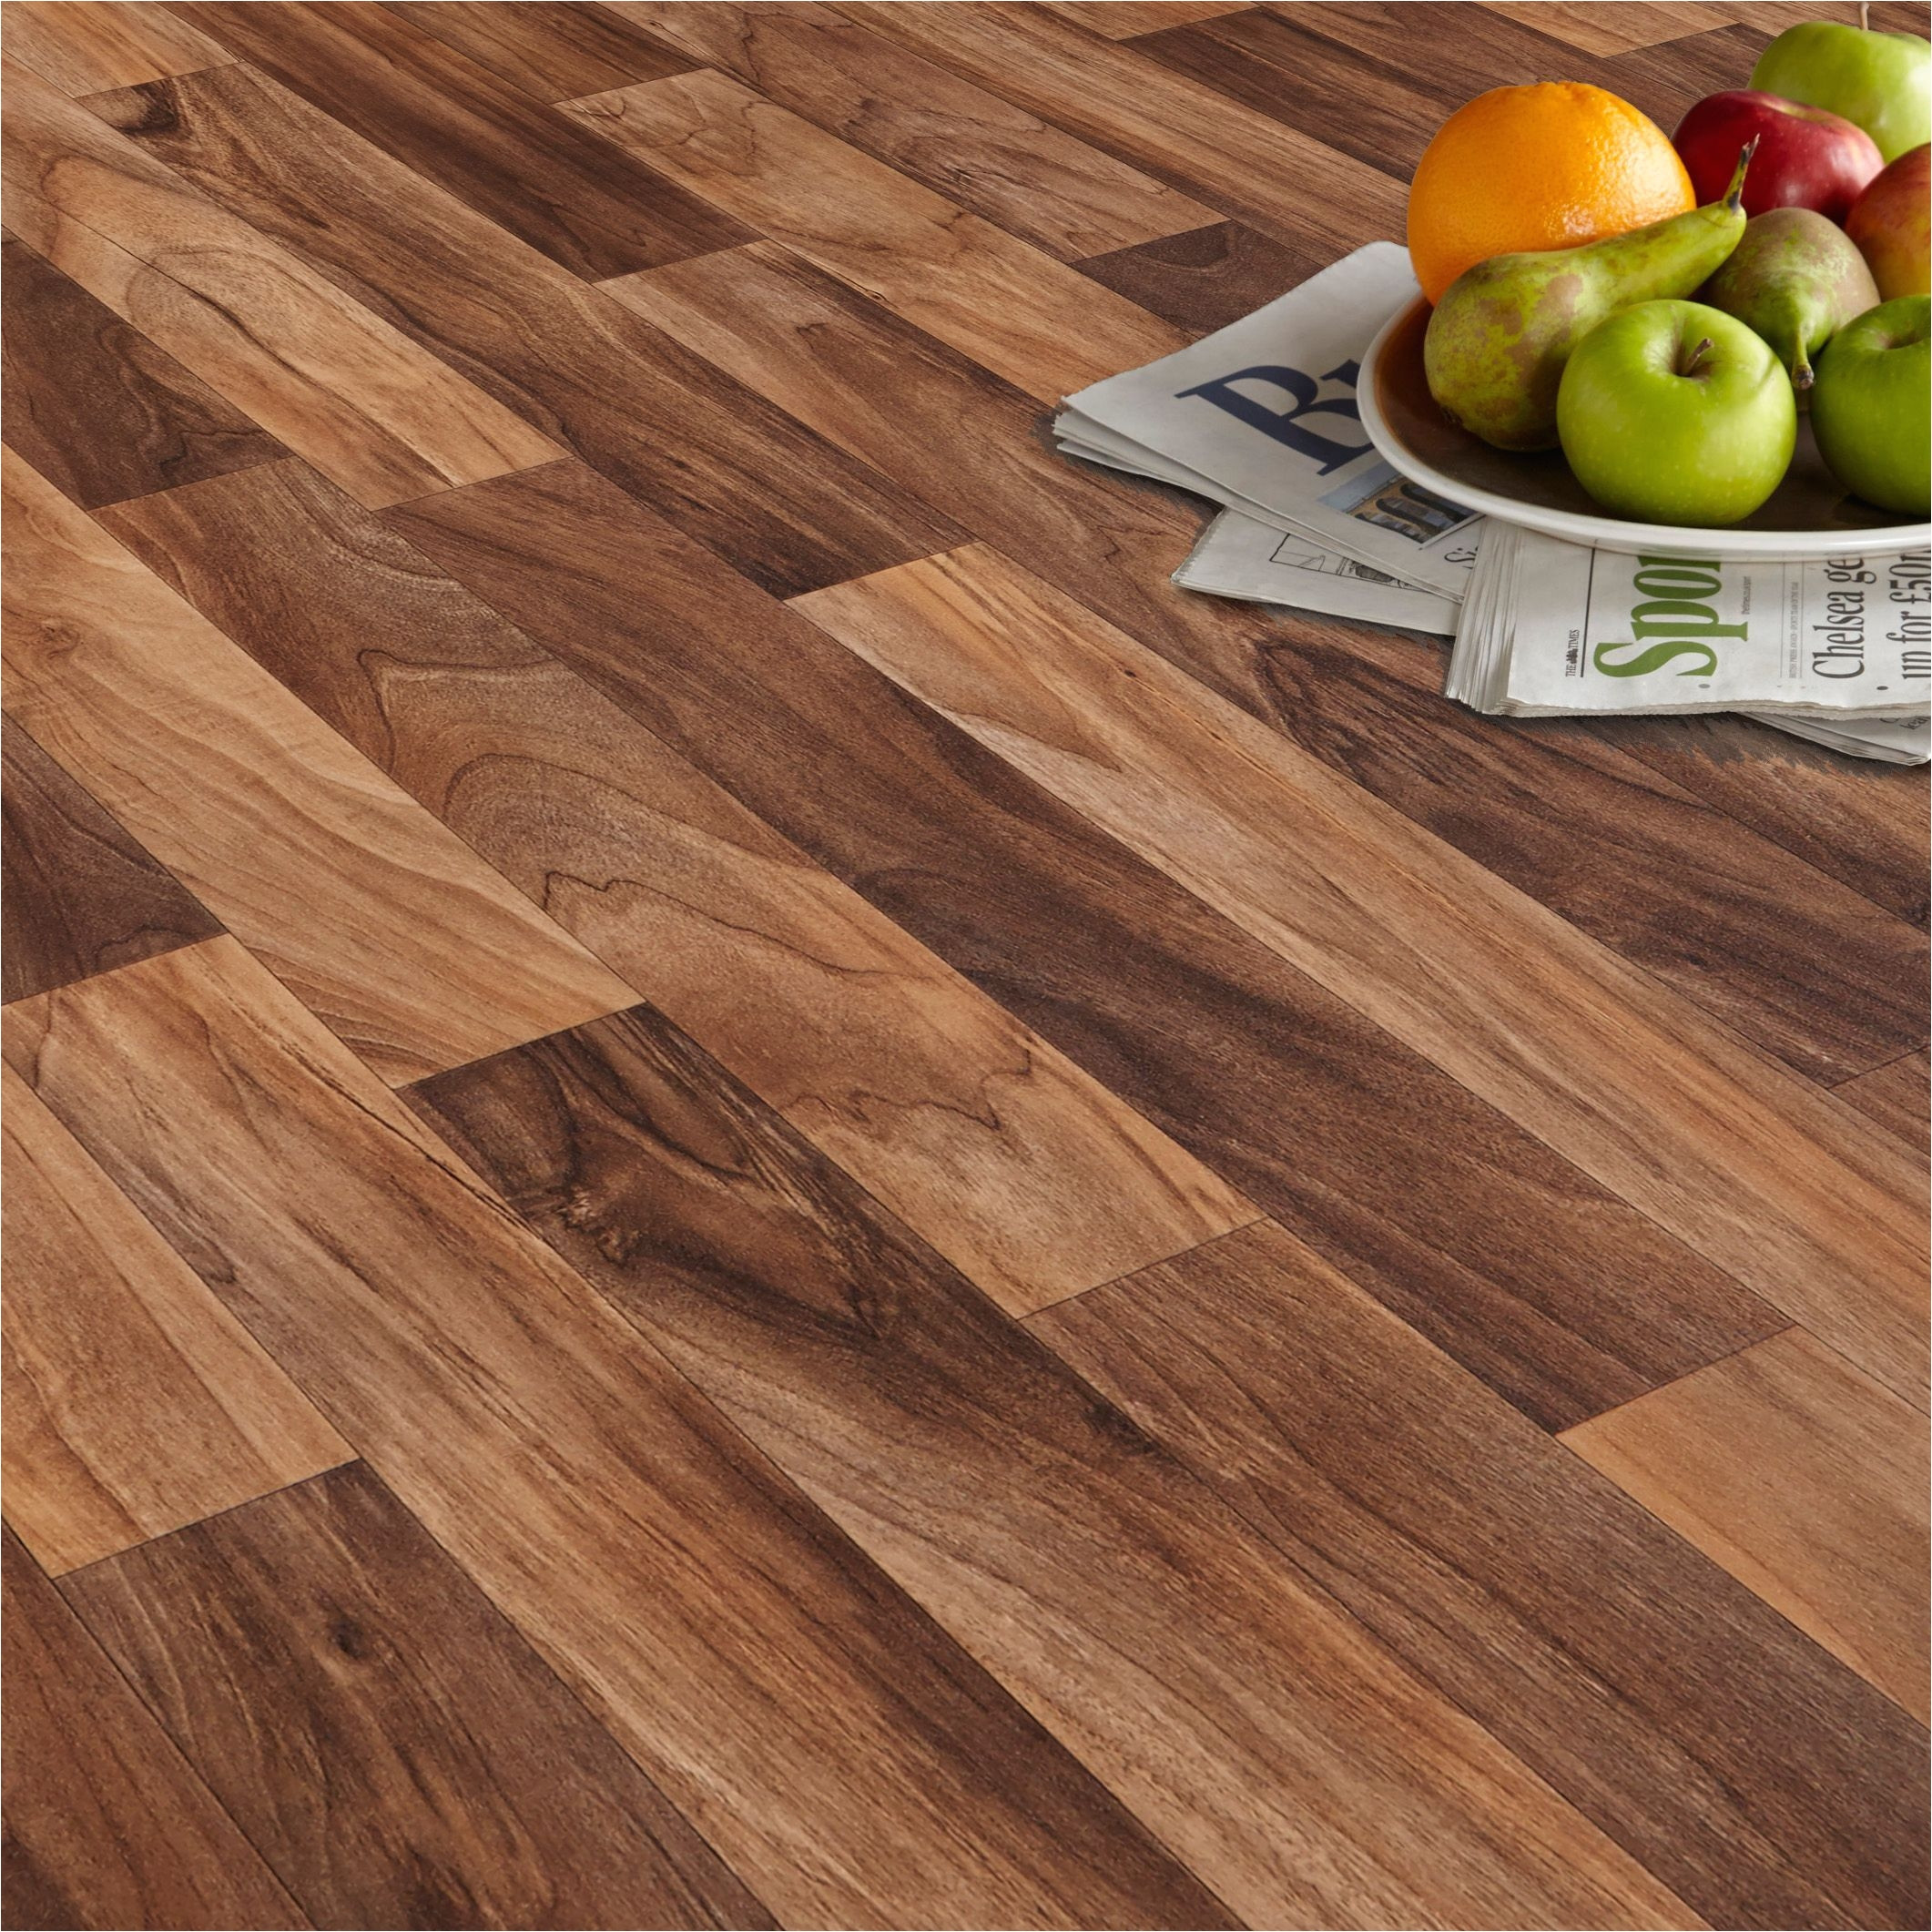 vinyl flooring vs hardwood of click together vinyl plank flooring b q arezzo walnut effect matt with click together vinyl plank flooring b q arezzo walnut effect matt vinyl flooring 6 ma interiors